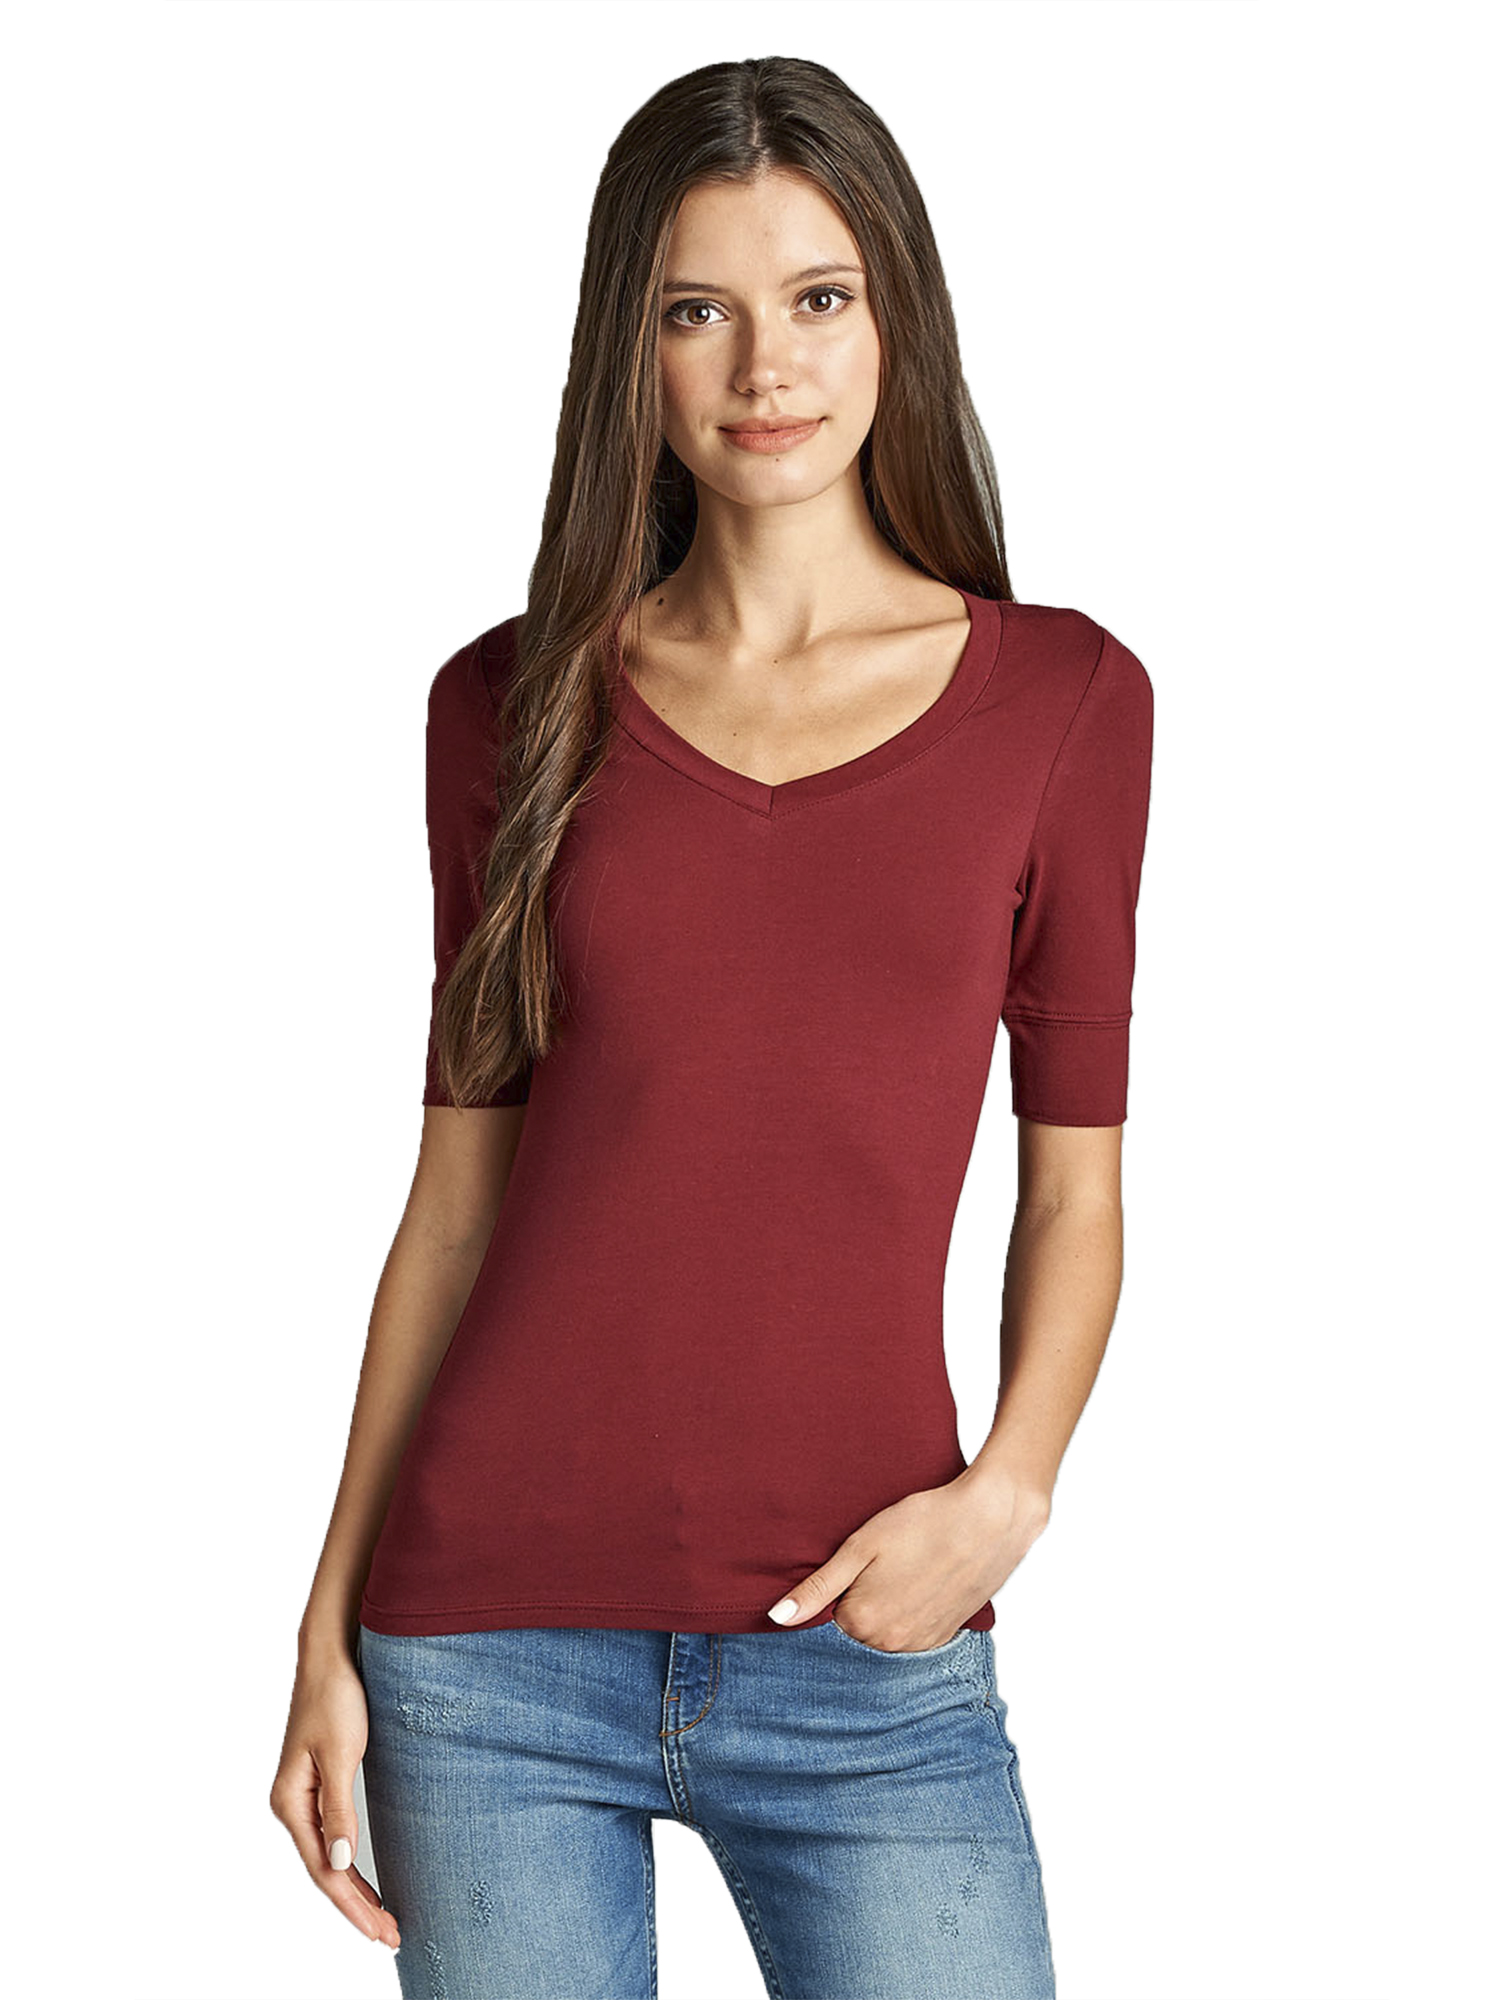 emmalise women's cotton blend v neck tee shirt half sleeves - junior and plus sizes